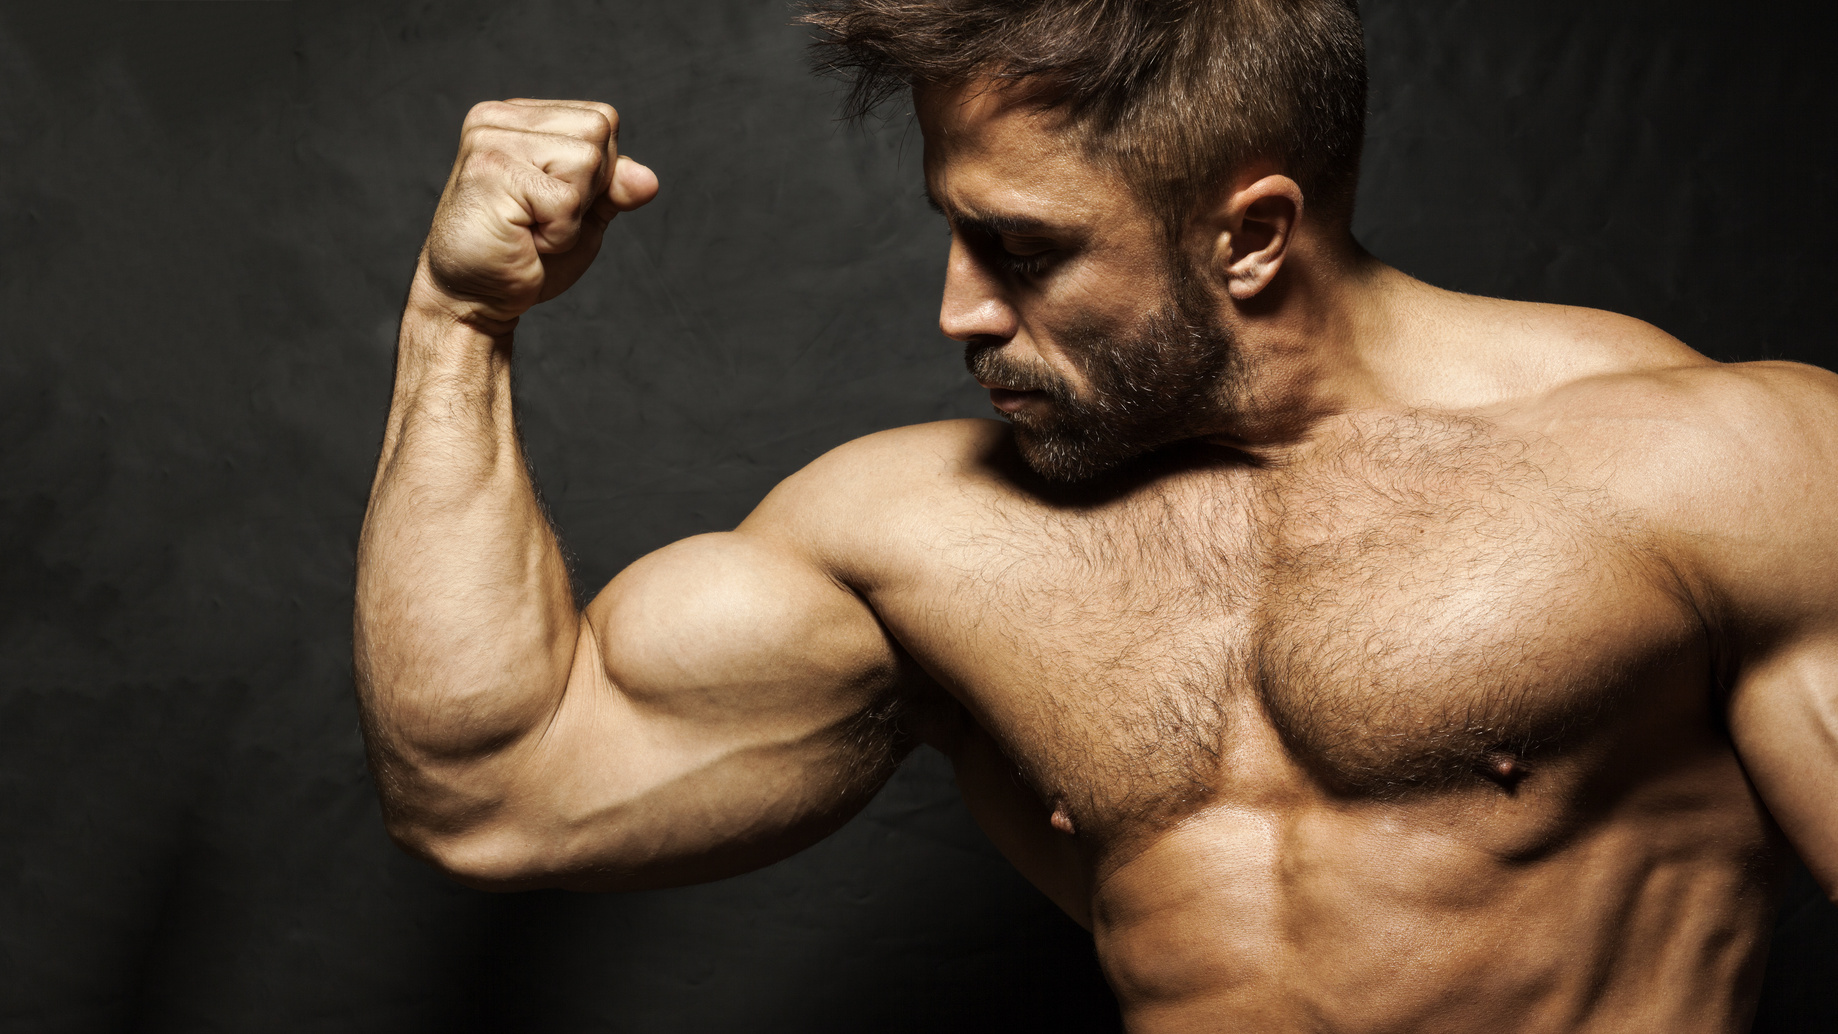 A muscular man flexing his biceps